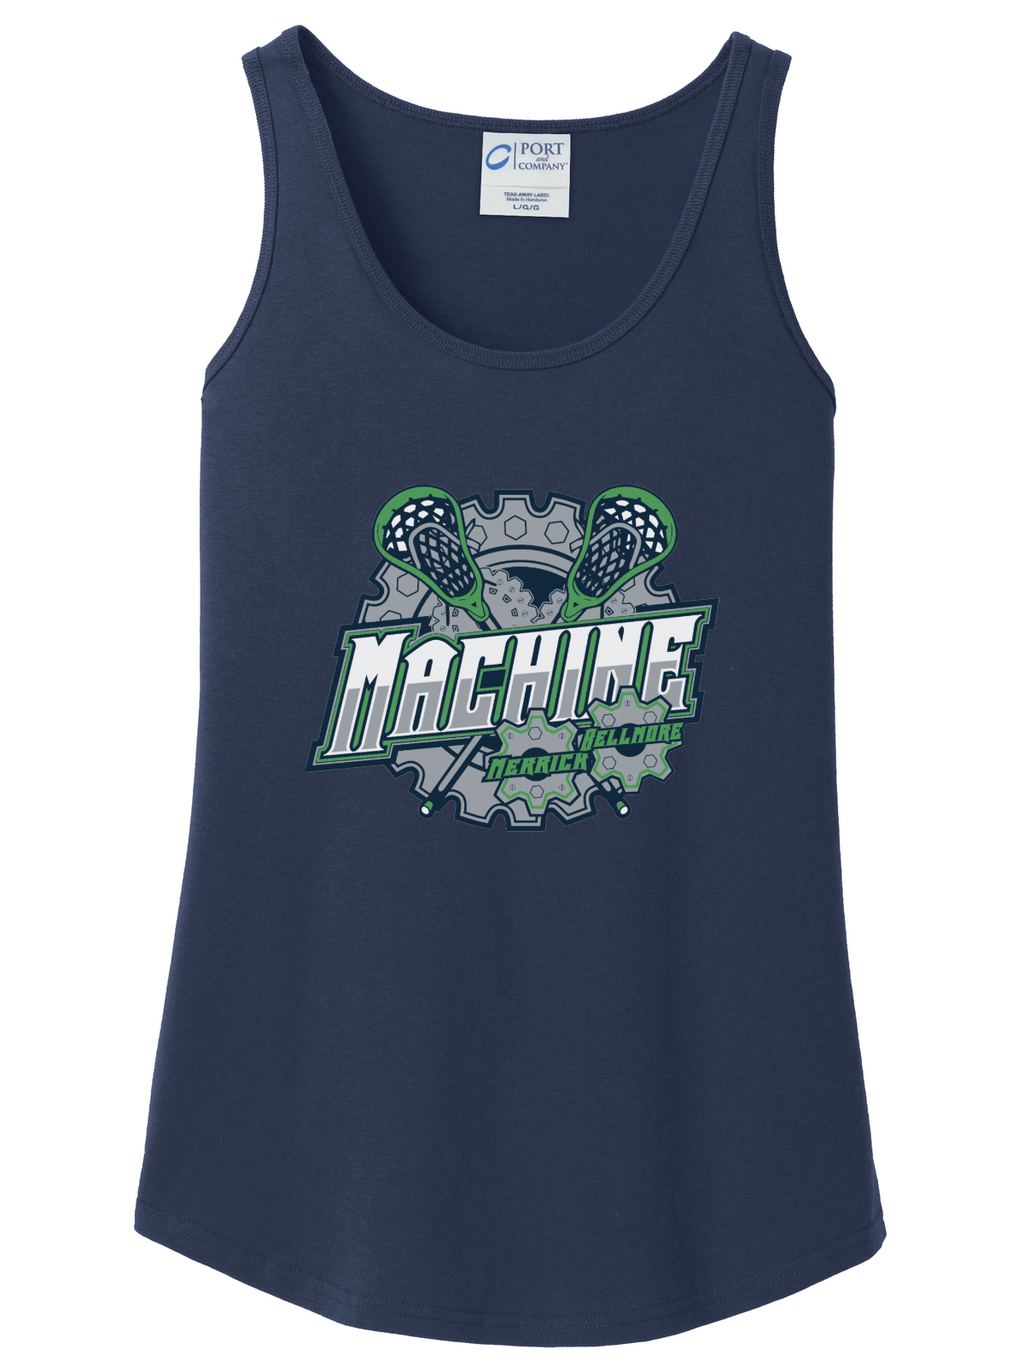 Merrick-Bellmore Women's Tank Top (Navy)